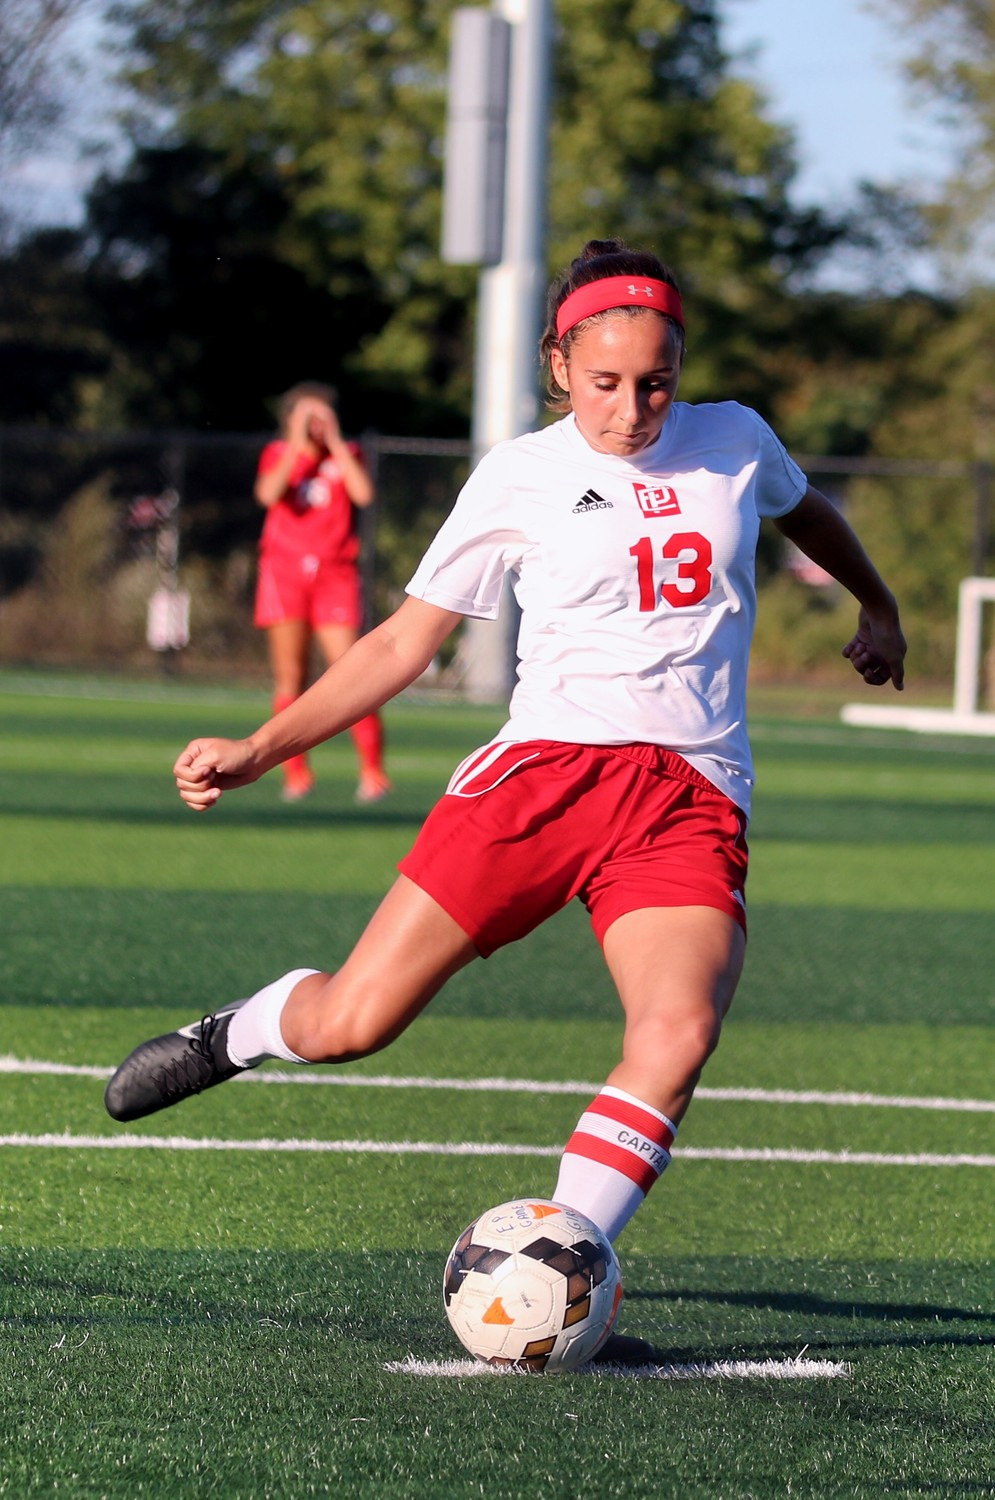 Hailey Placido of the undefeated Townies soccer team in action. Photo by Paul Tumidajski.